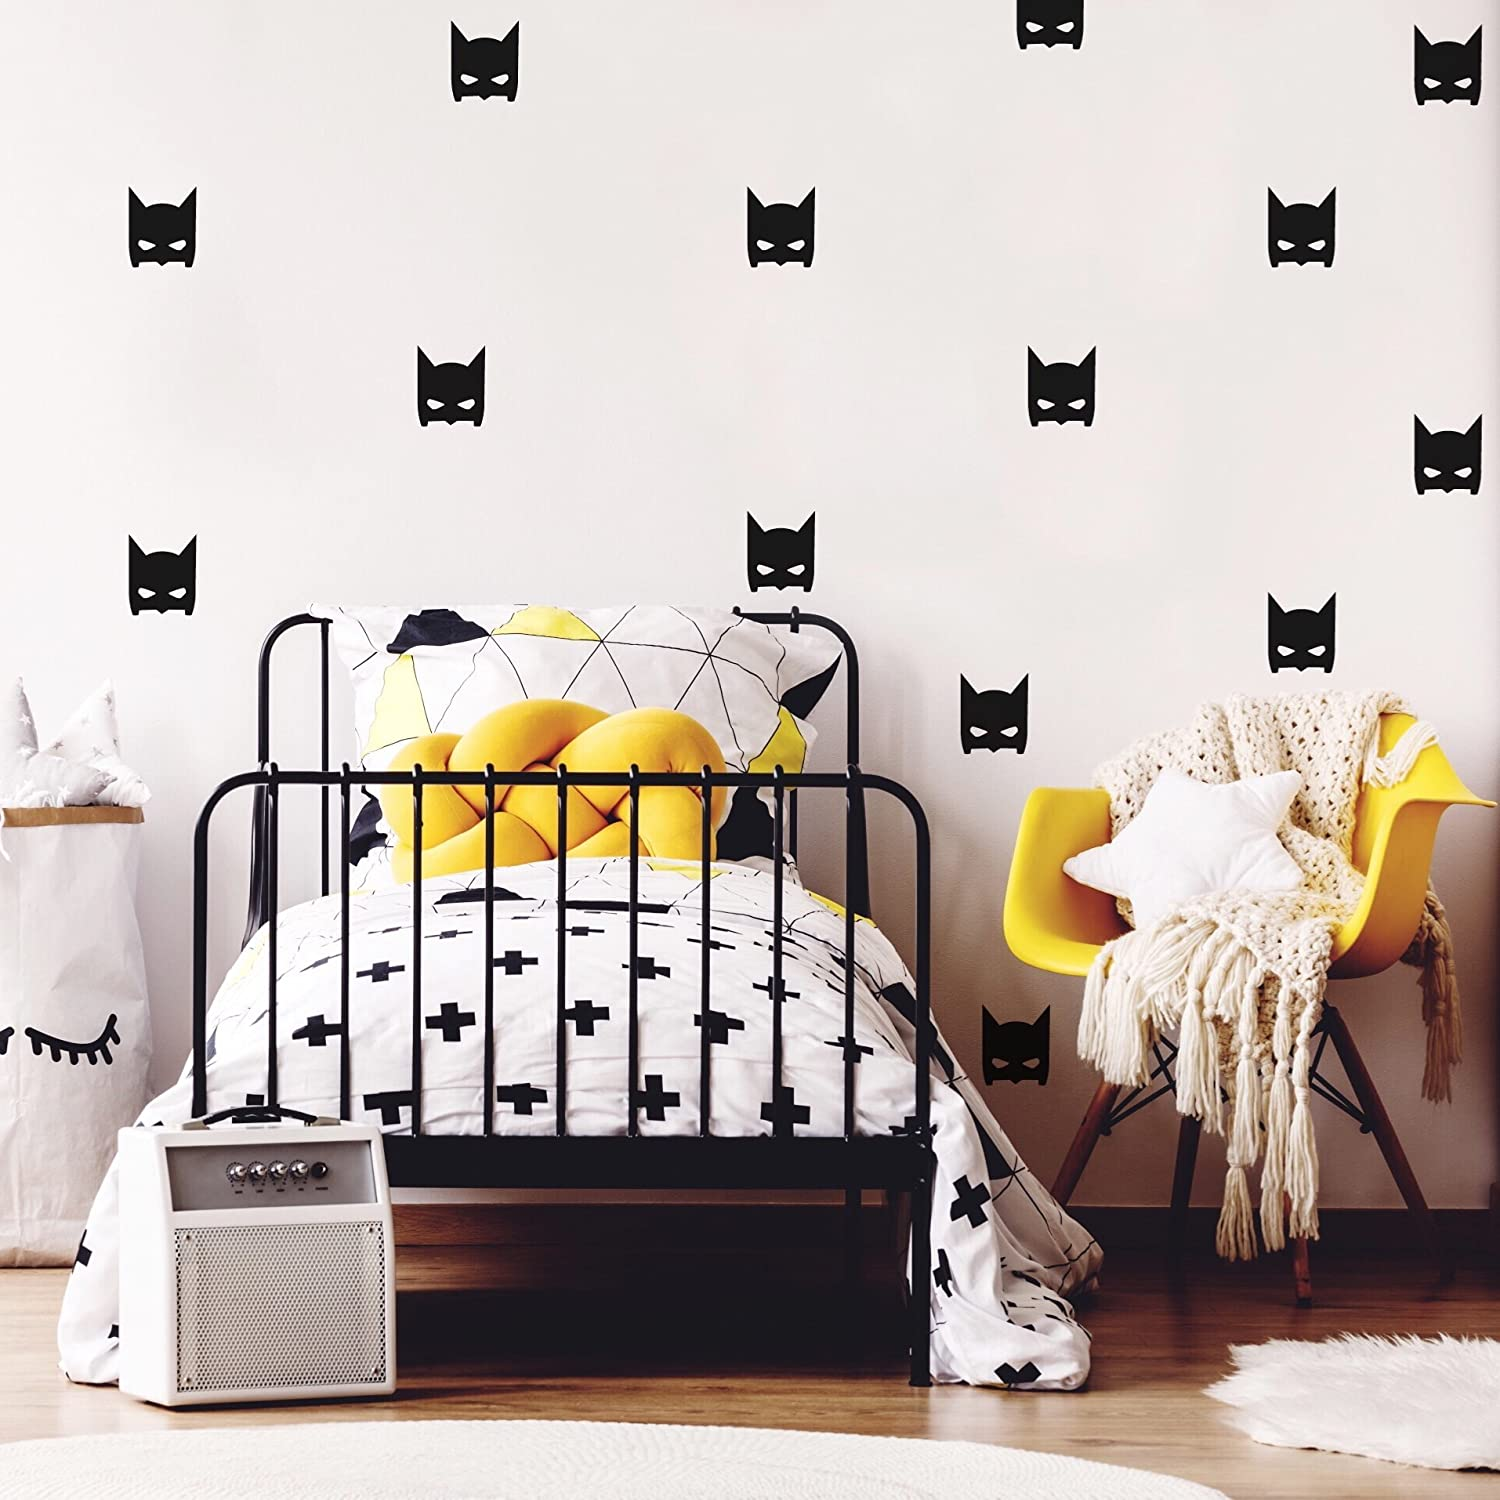 Batman decals by Studio Picco | Stickers for boys, Black wall decal, Baby nursery decor - 24 pcs